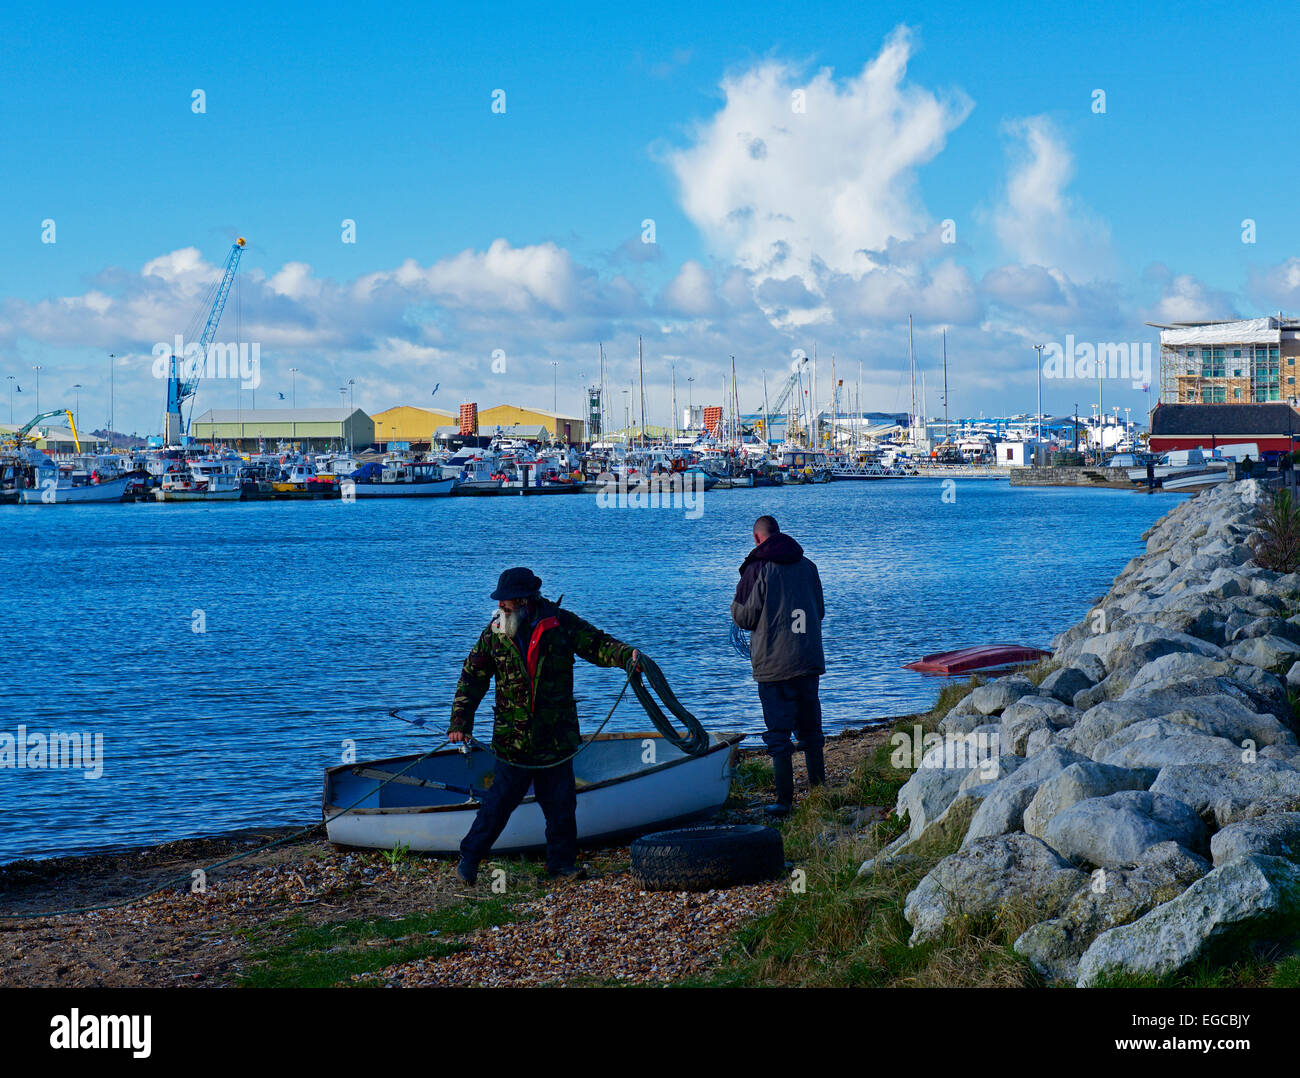 Two men and dinghy at Poole Harbour, Dorset, England UK - Stock Image